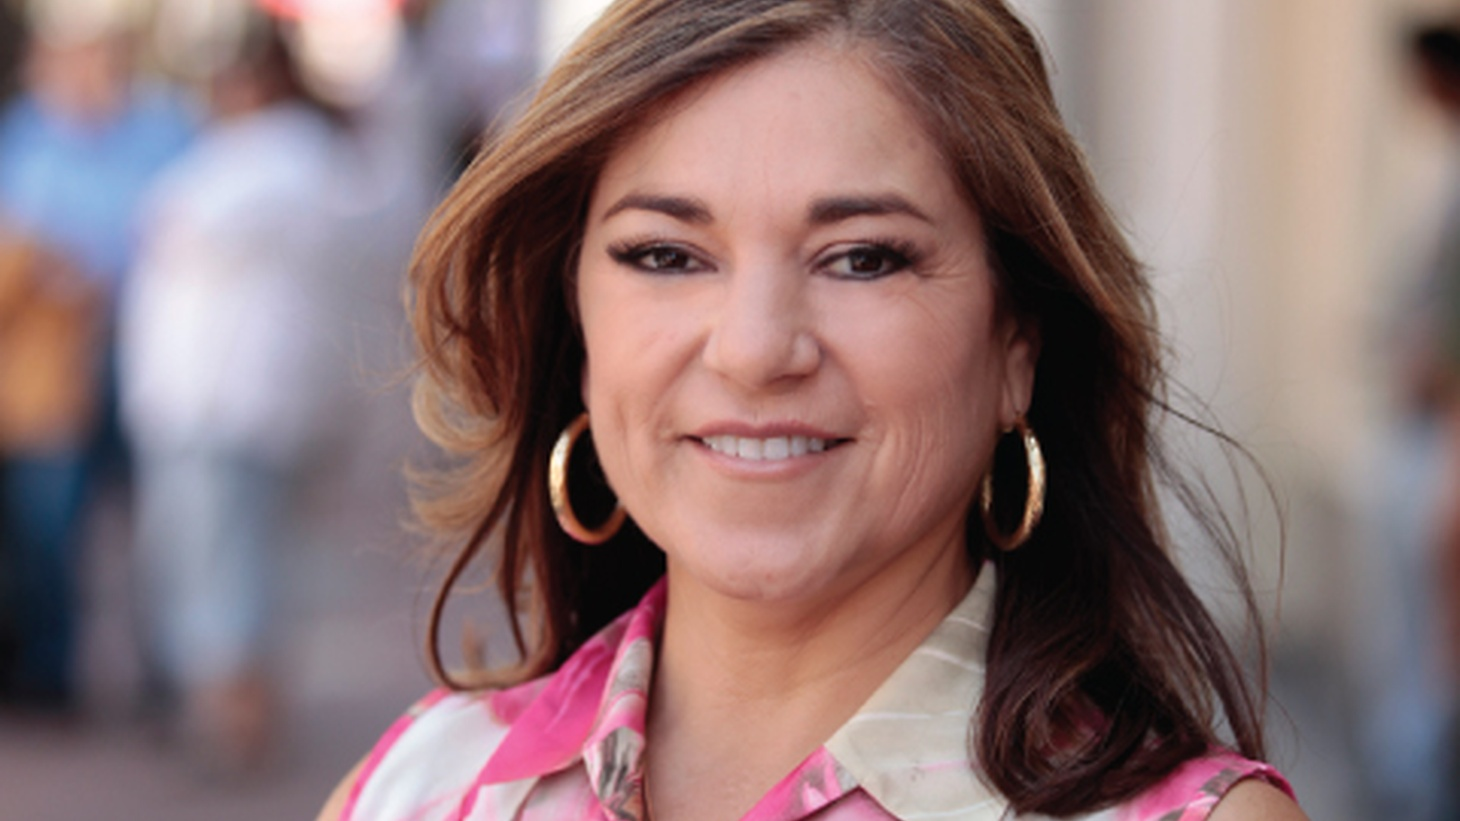 Opening her candidacy for the US Senate, Orange County Congresswoman Loretta Sanchez may have tripped over an ill-timed joke with ethnic stereotypes -- including a war whoop. We hear how it sounded and how it's playing in parts of the state where Sanchez is not yet well known.